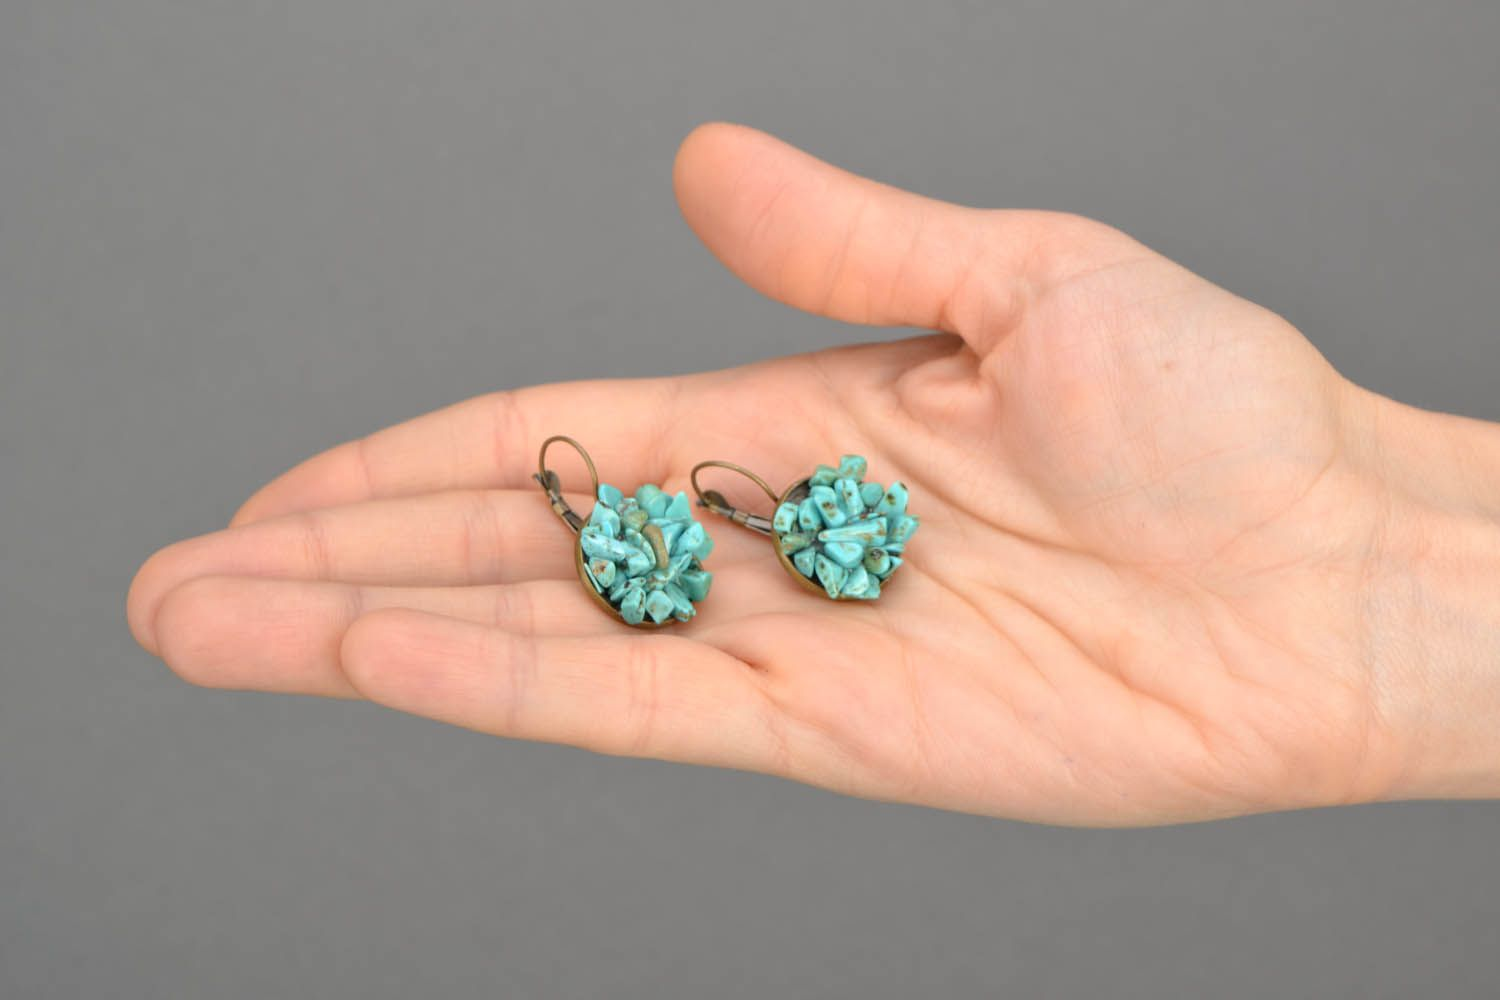 Turquoise round earrings photo 5